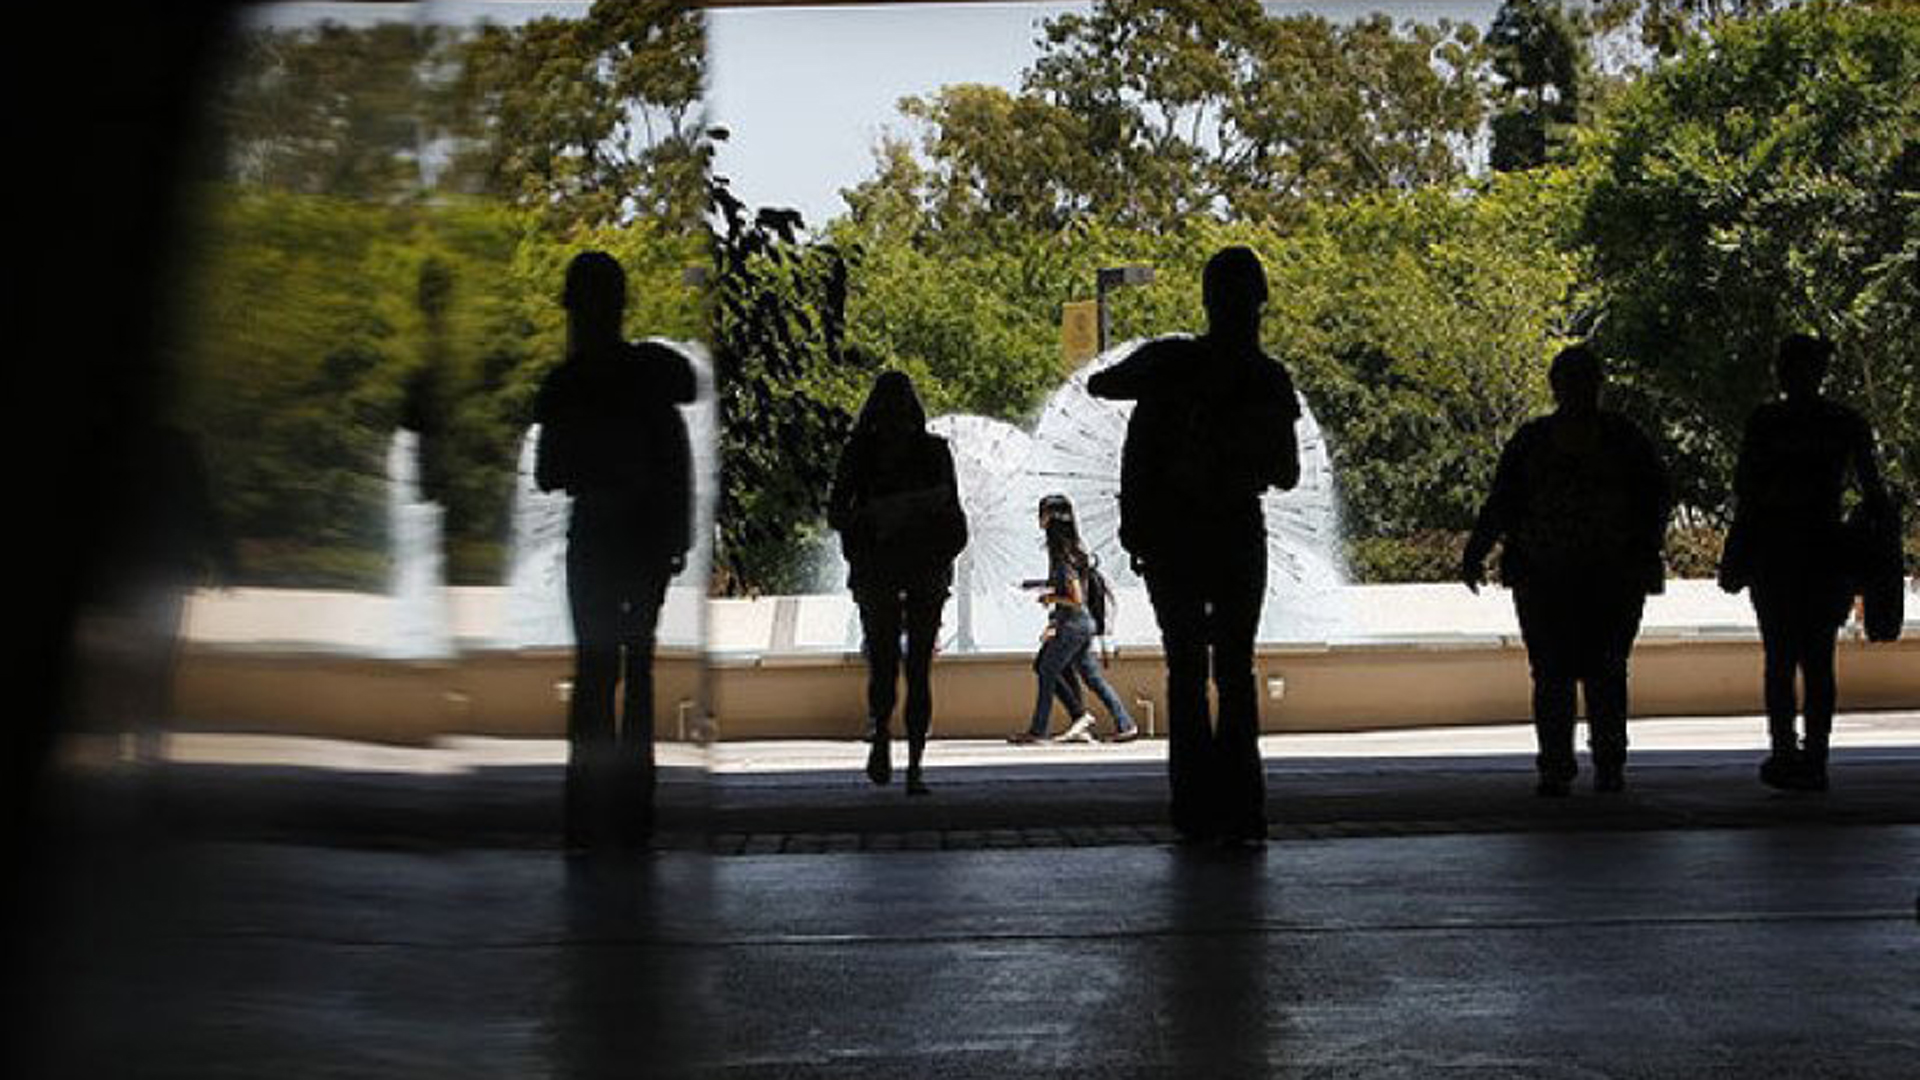 Students walk between Lough Memorial Fountain and Brotman Hall at Cal State Long Beach in this file photo. (Allen J. Schaben / Los Angeles Times)